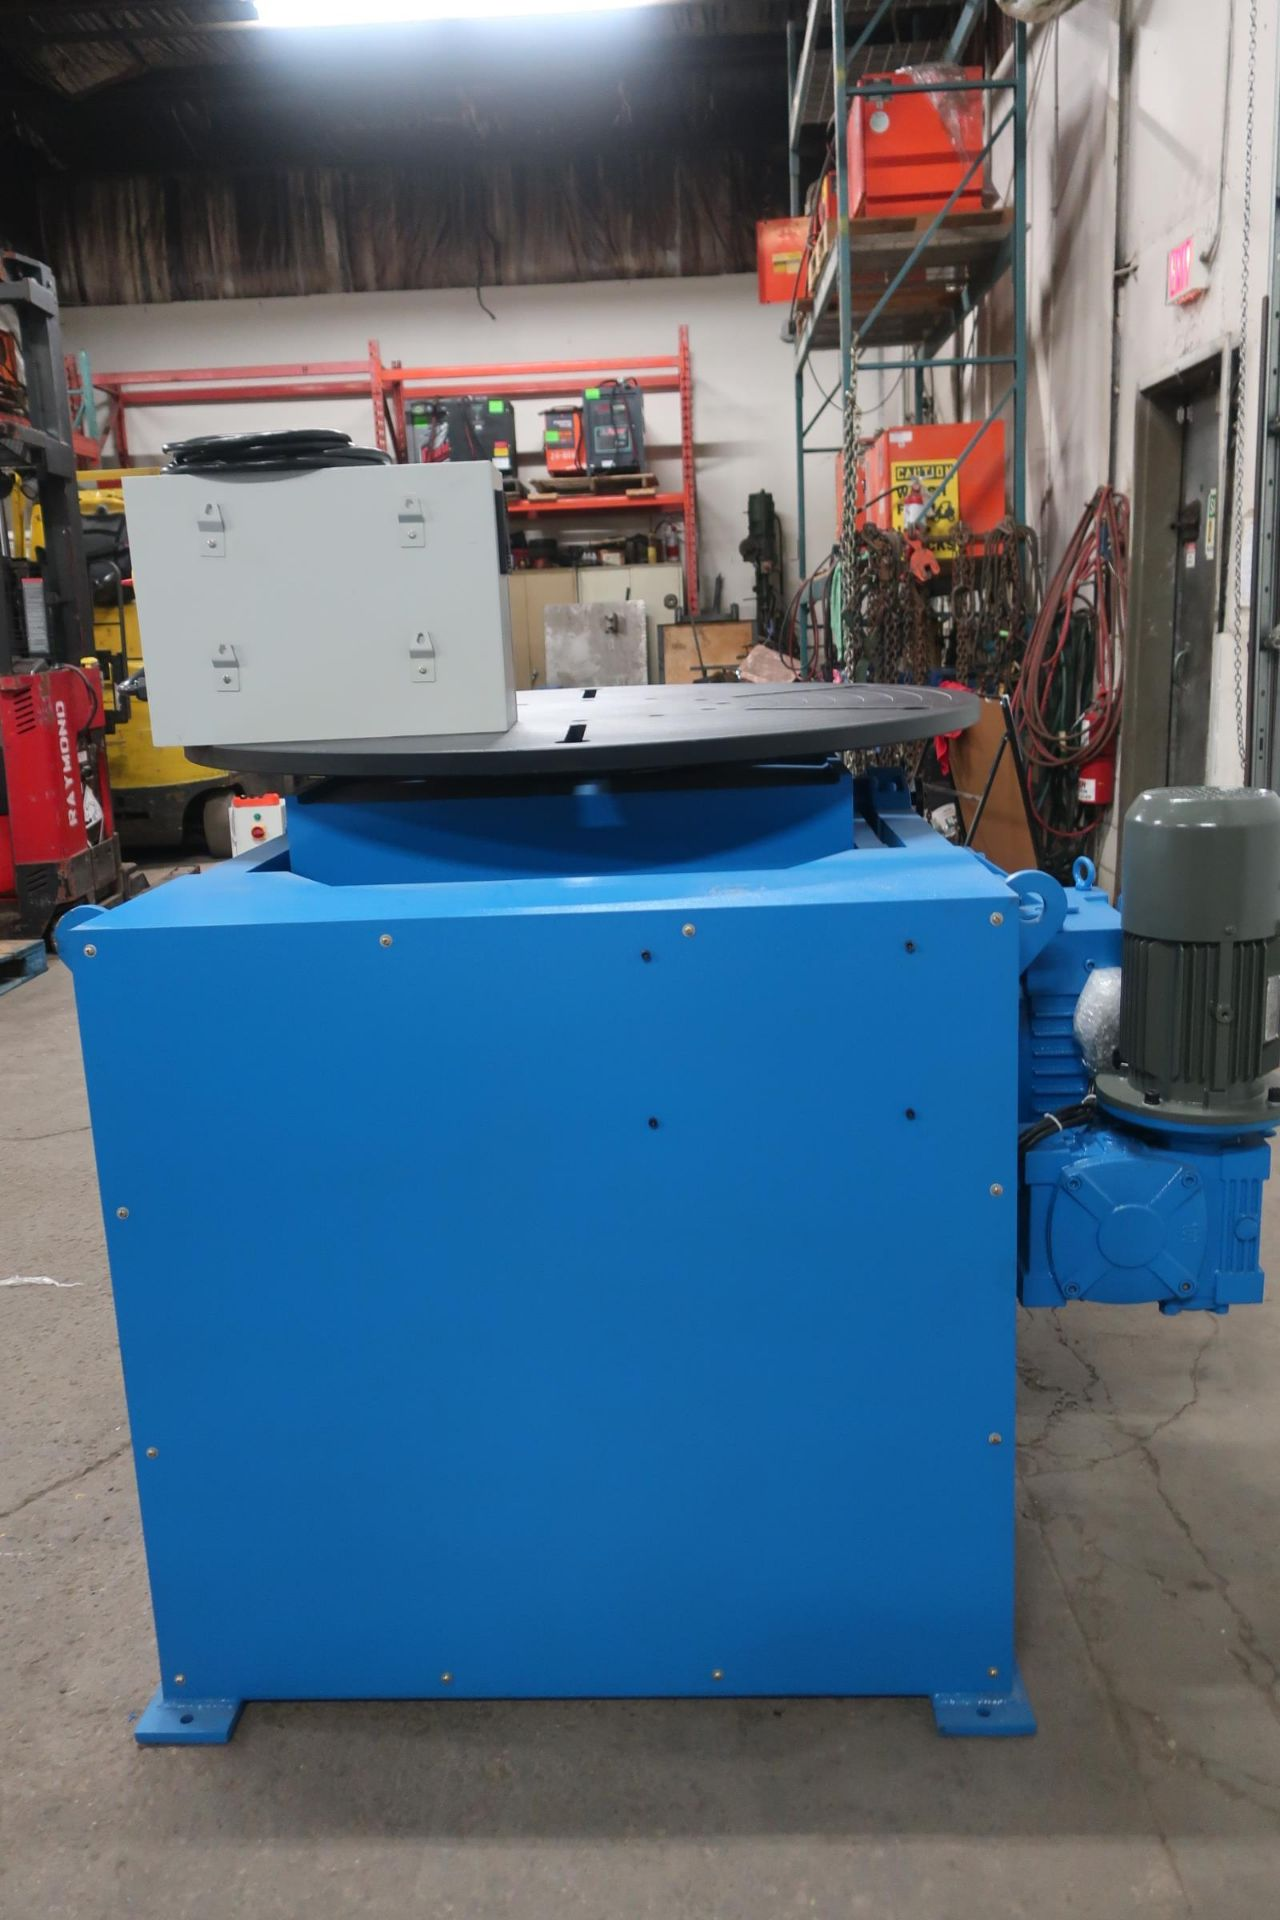 BWJ-30 WELDING POSITIONER 3000kg or 6600lbs capacity - tilt and rotate with variable speed drive and - Image 4 of 4